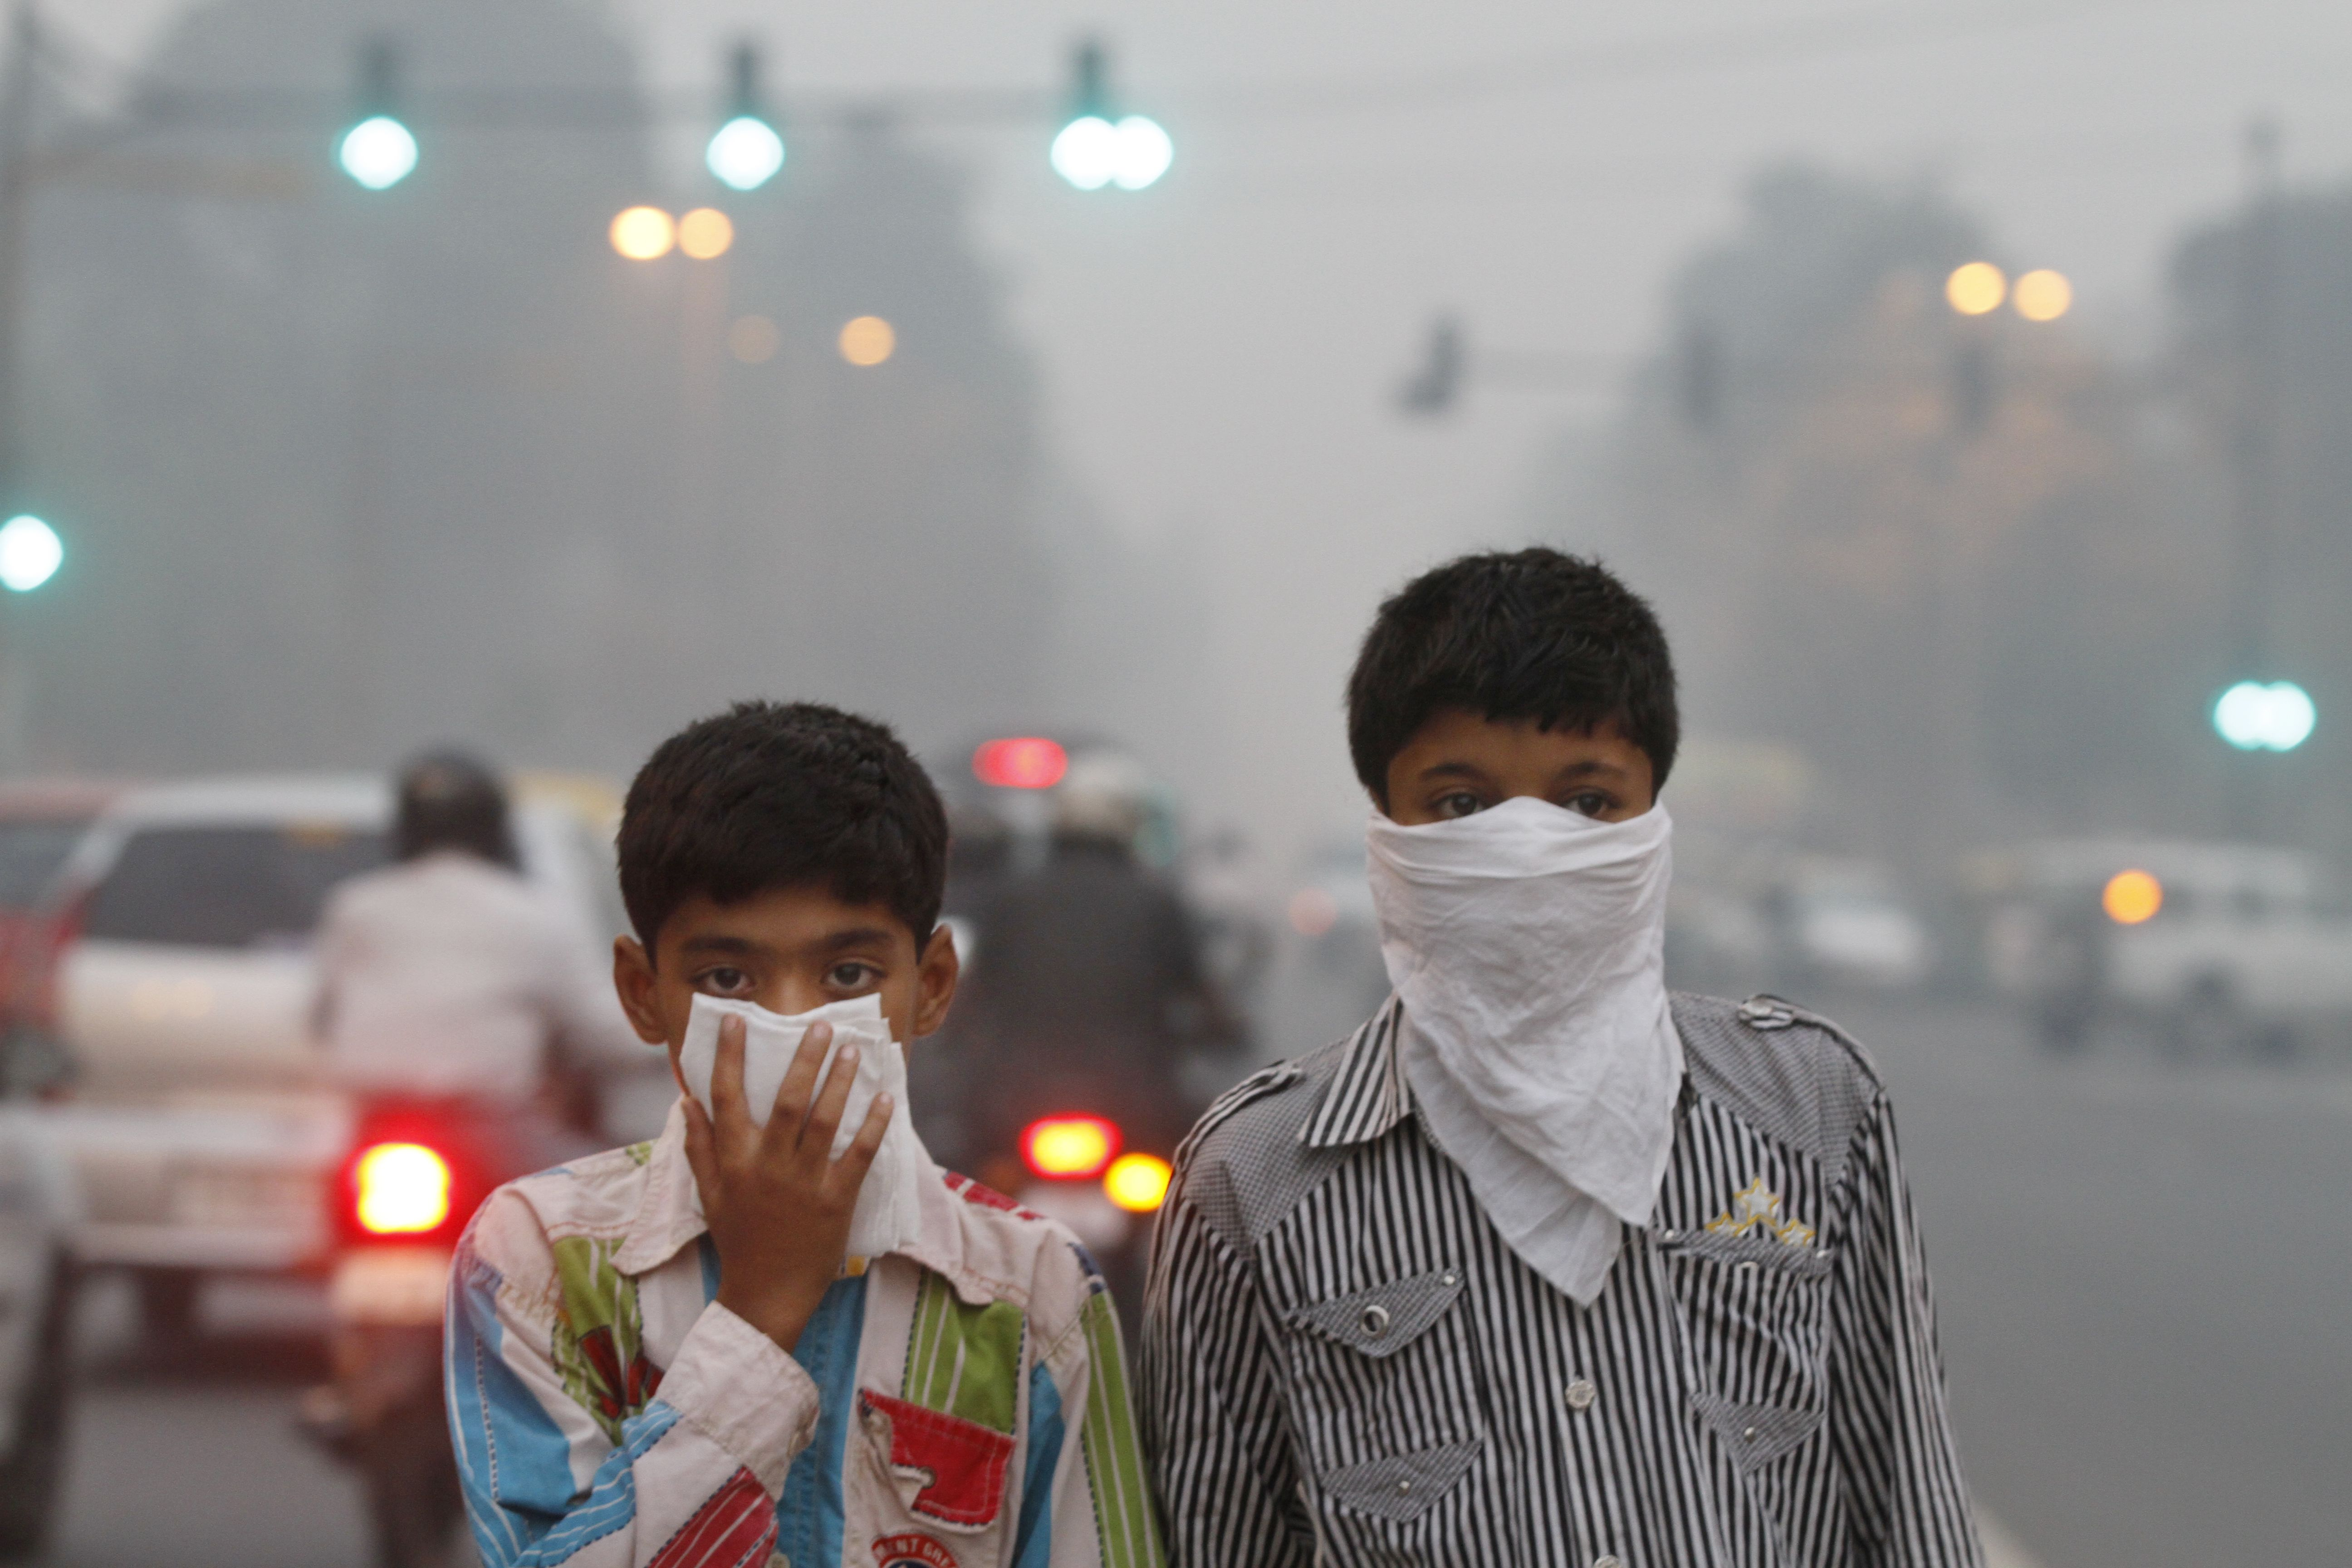 This is a picture of children wearing masks to protects